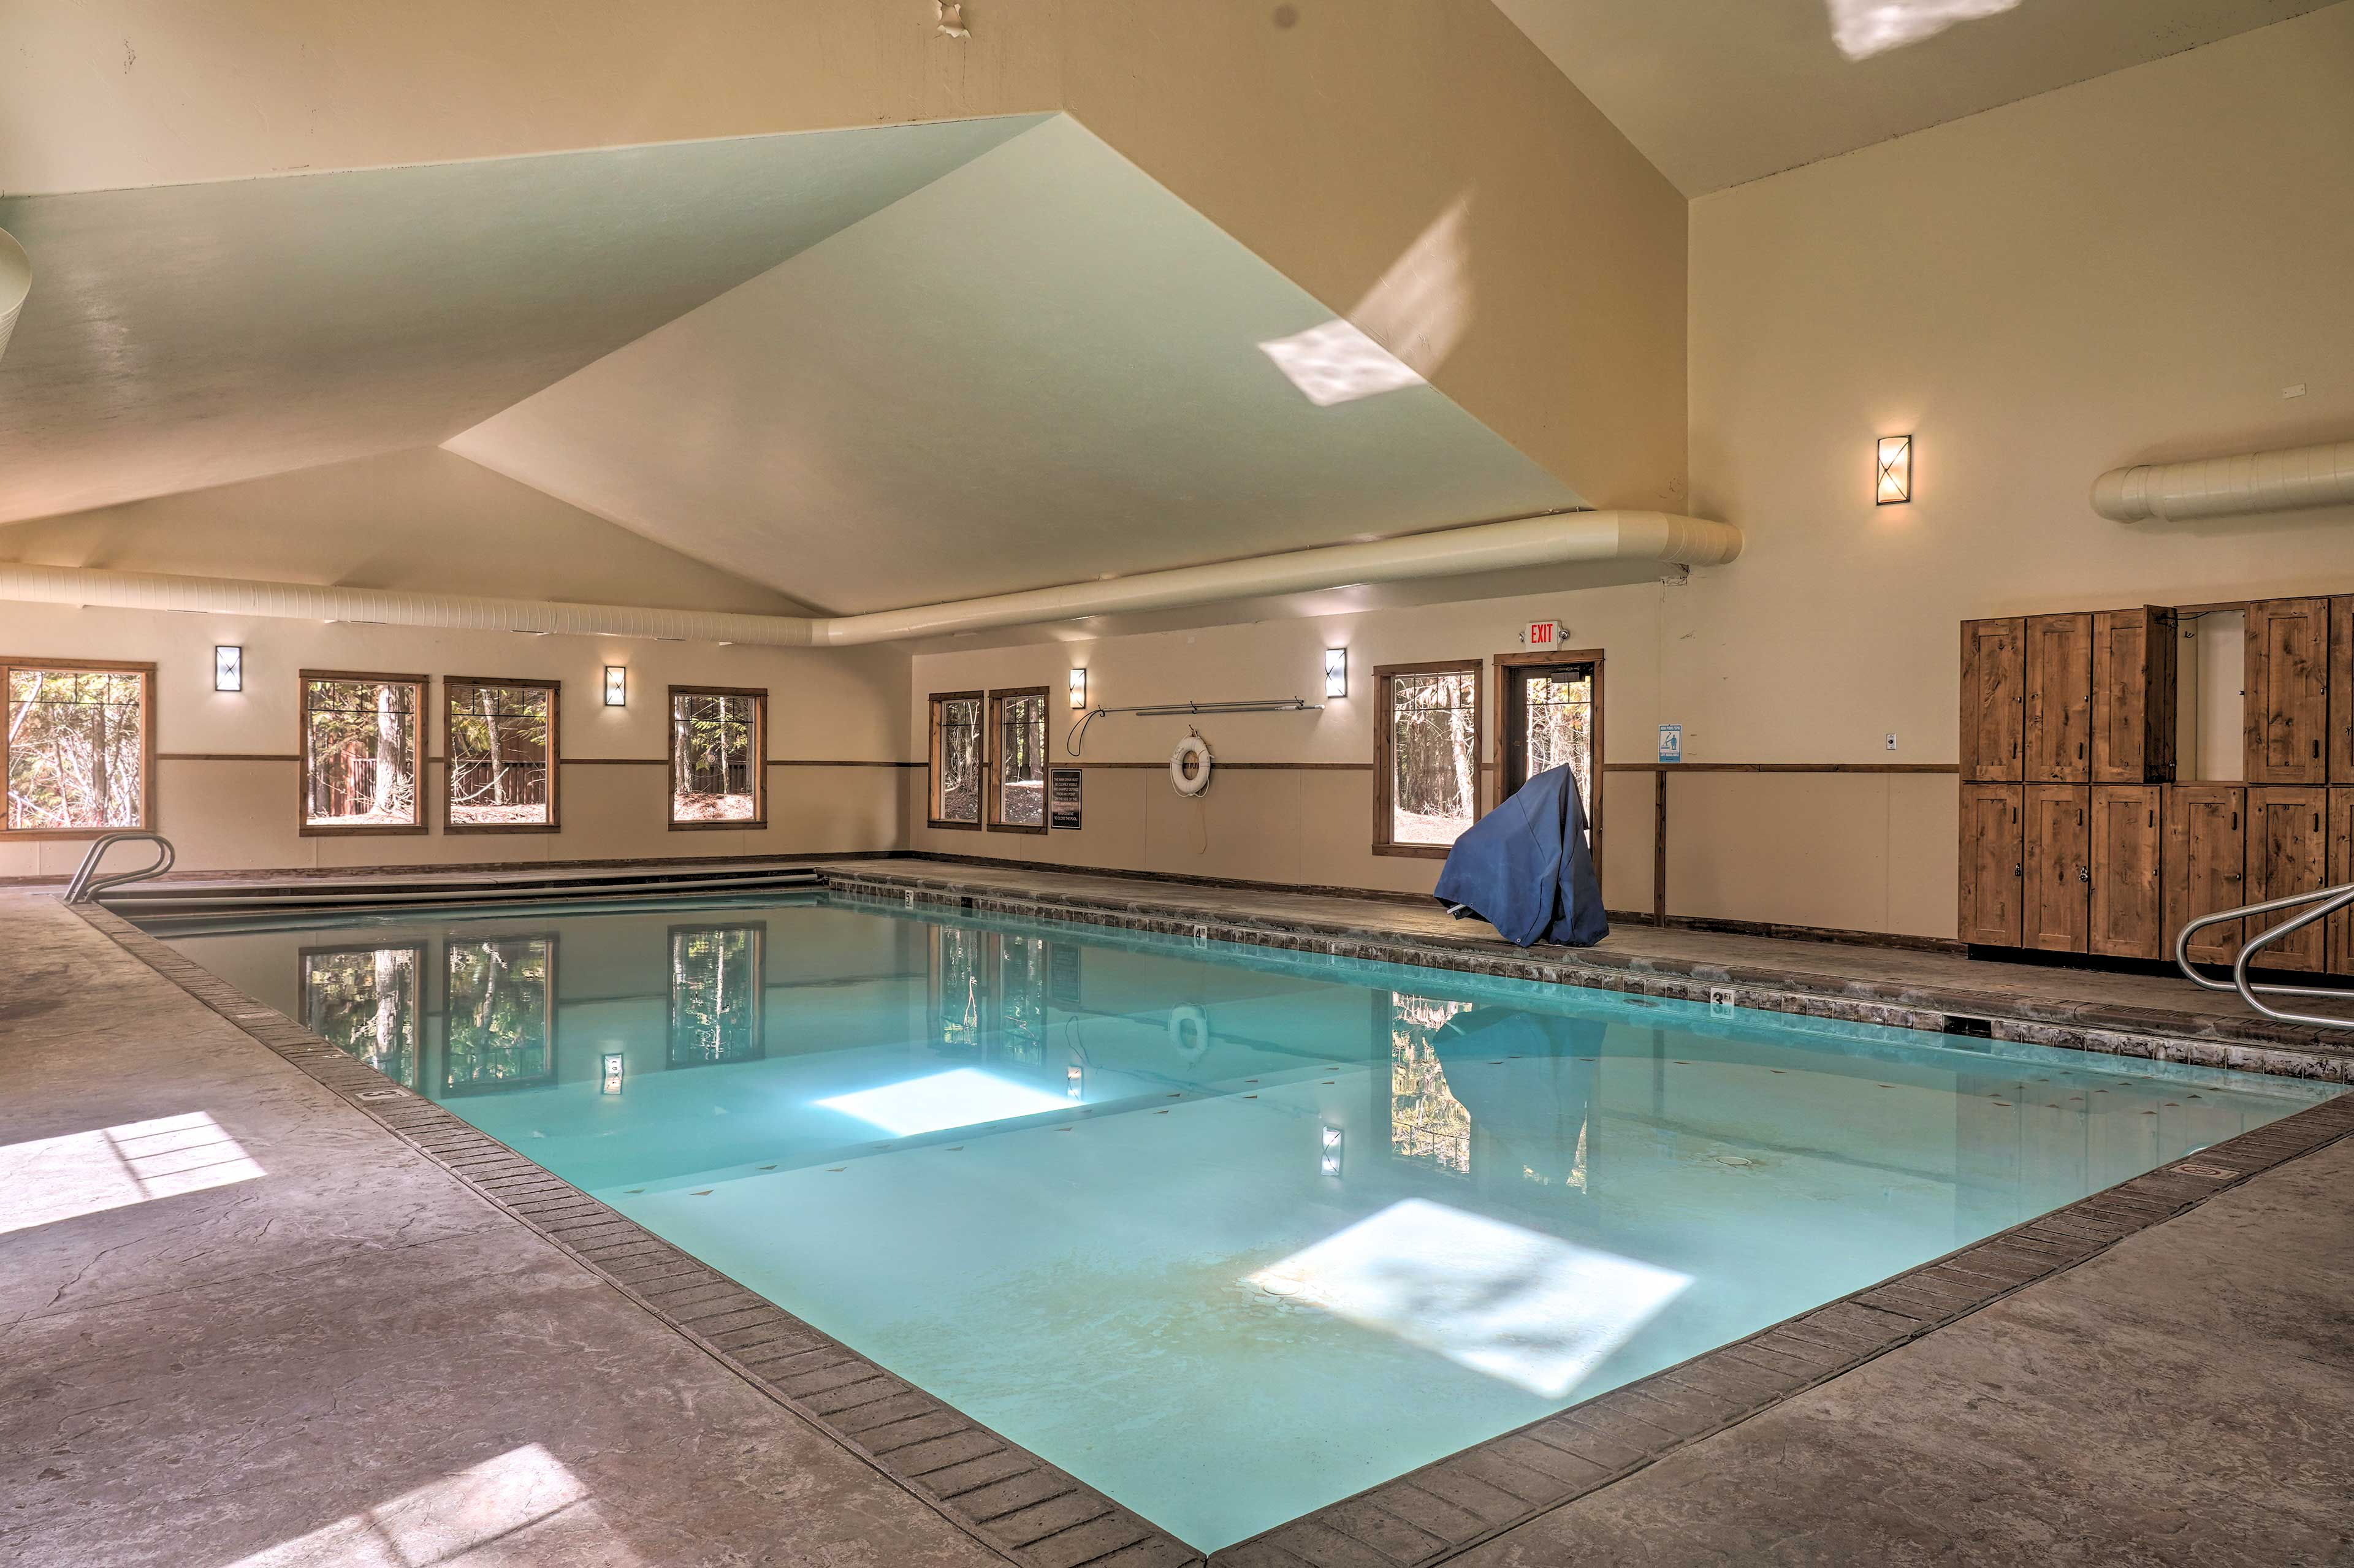 Go for a refreshing swim in the saltwater pool, great for your skin!